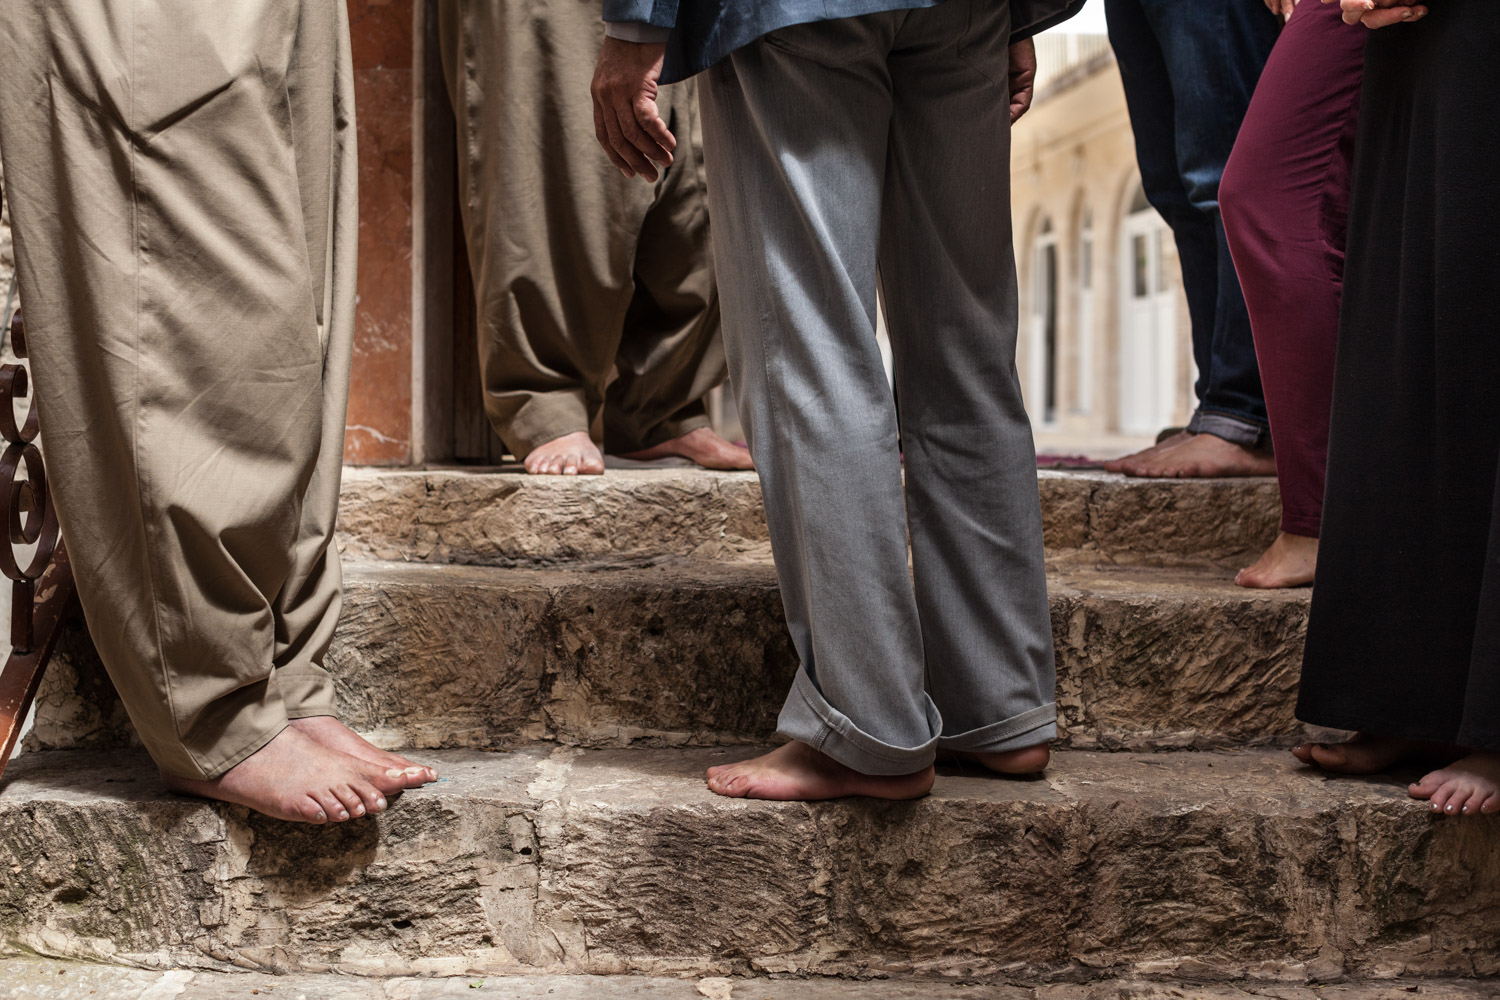 Barefoot at Lalish